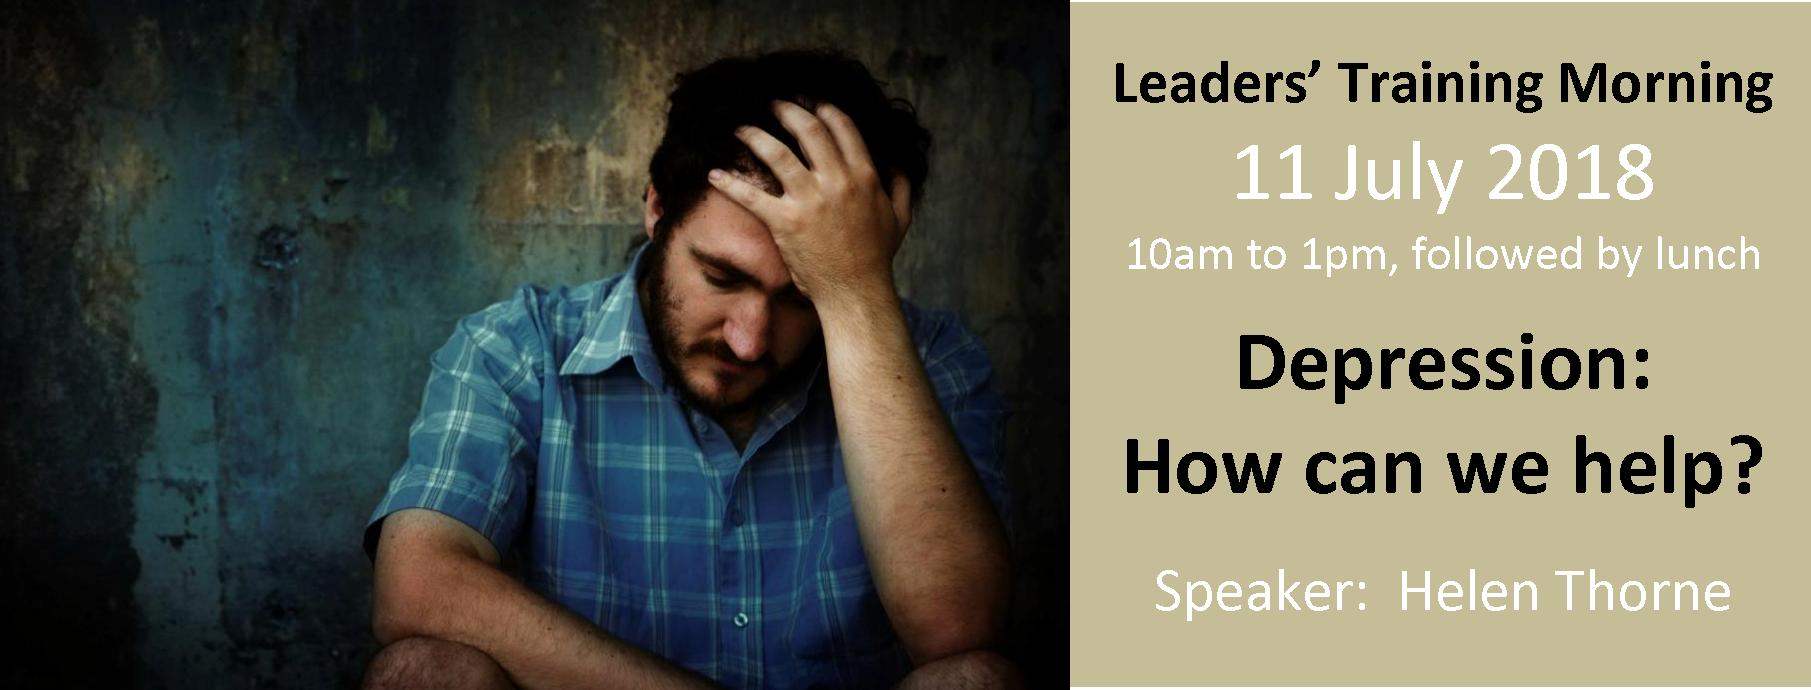 Slider - Leaders Training Mornings - 11 July 2018 - depression